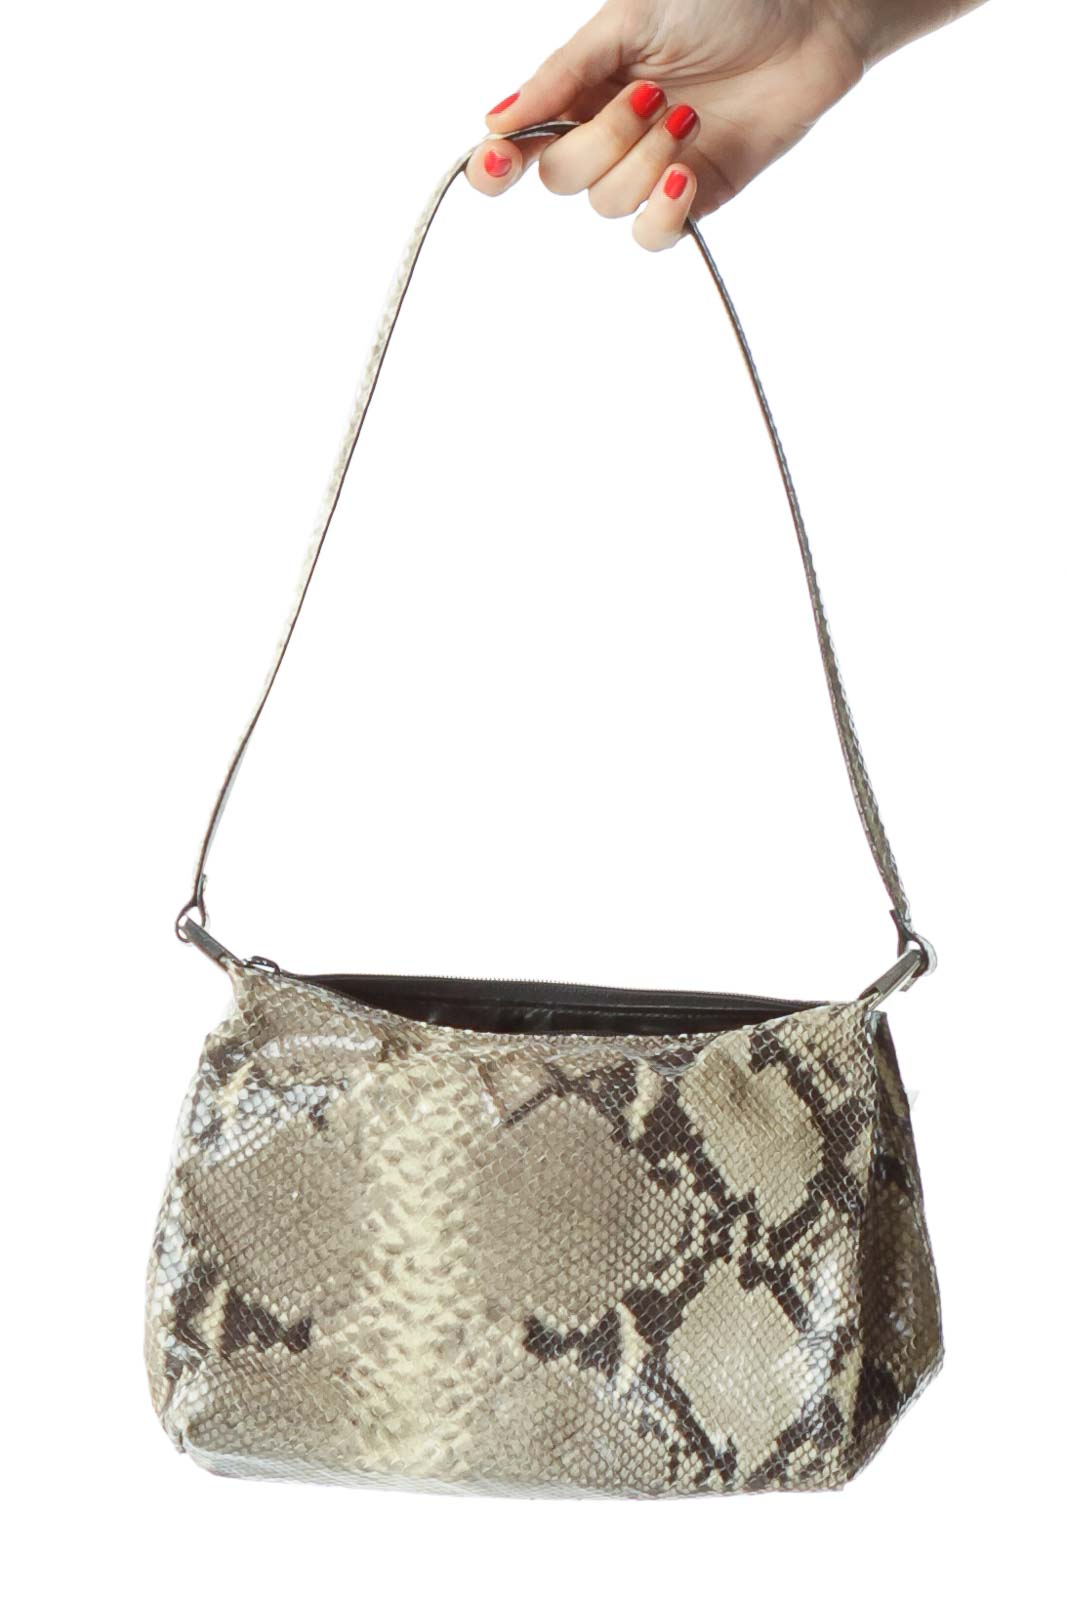 Green Black Faux Python Skin Shoulder Bag Front